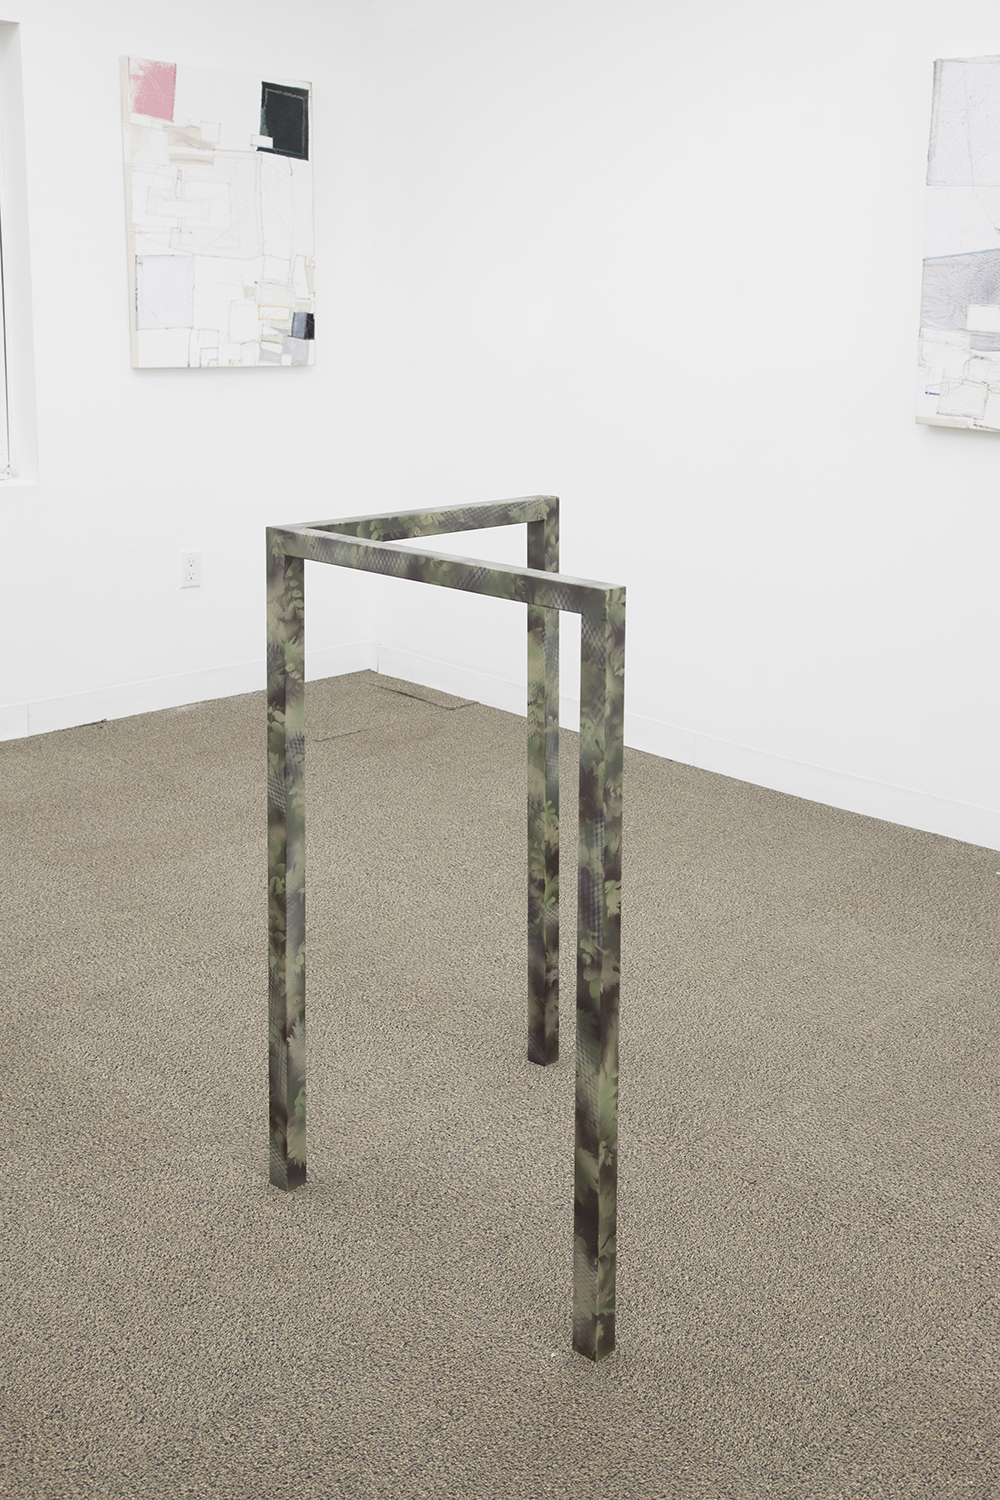 JOE GRAHAM-FELSEN  Camouflage (tri)  , 2013   Steel, spray enamel   23 x 40 x 23 inches